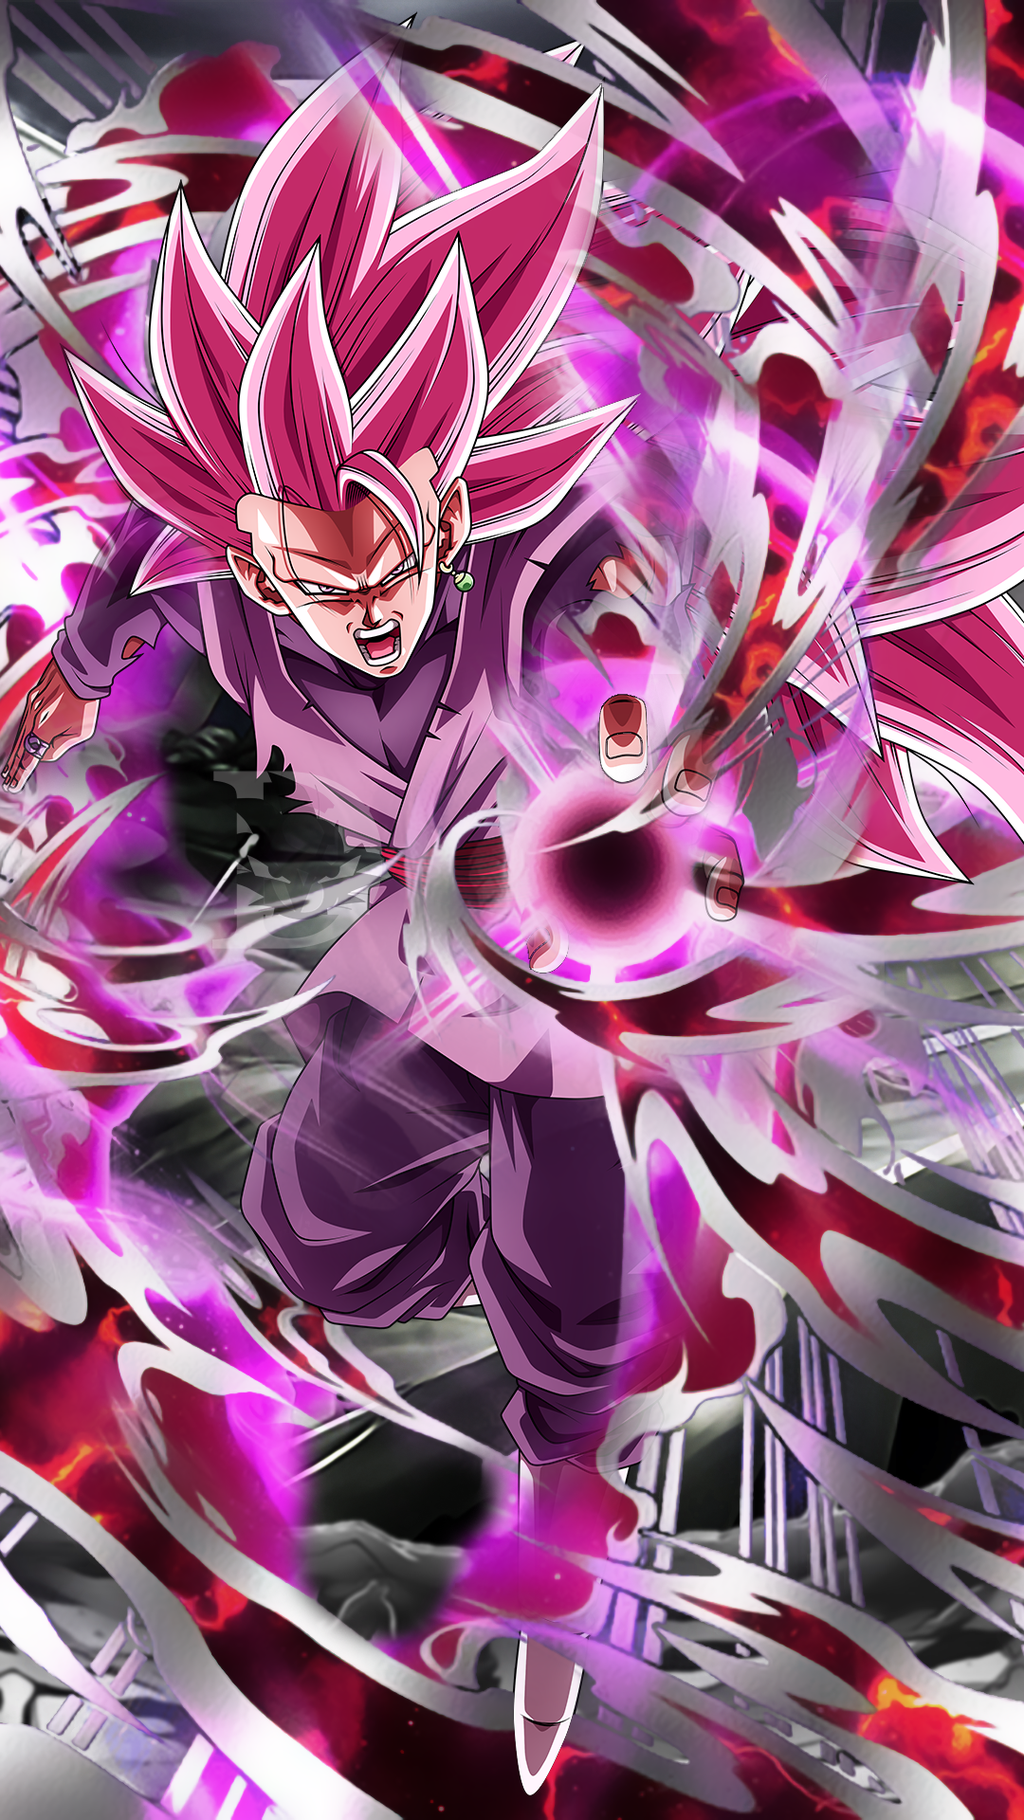 Goku Black Super Saiyan Rose 3 Wallpaper By Davidmaxsteinbach Dragon Ball Goku Dragon Ball Wallpapers Dragon Ball Super Goku